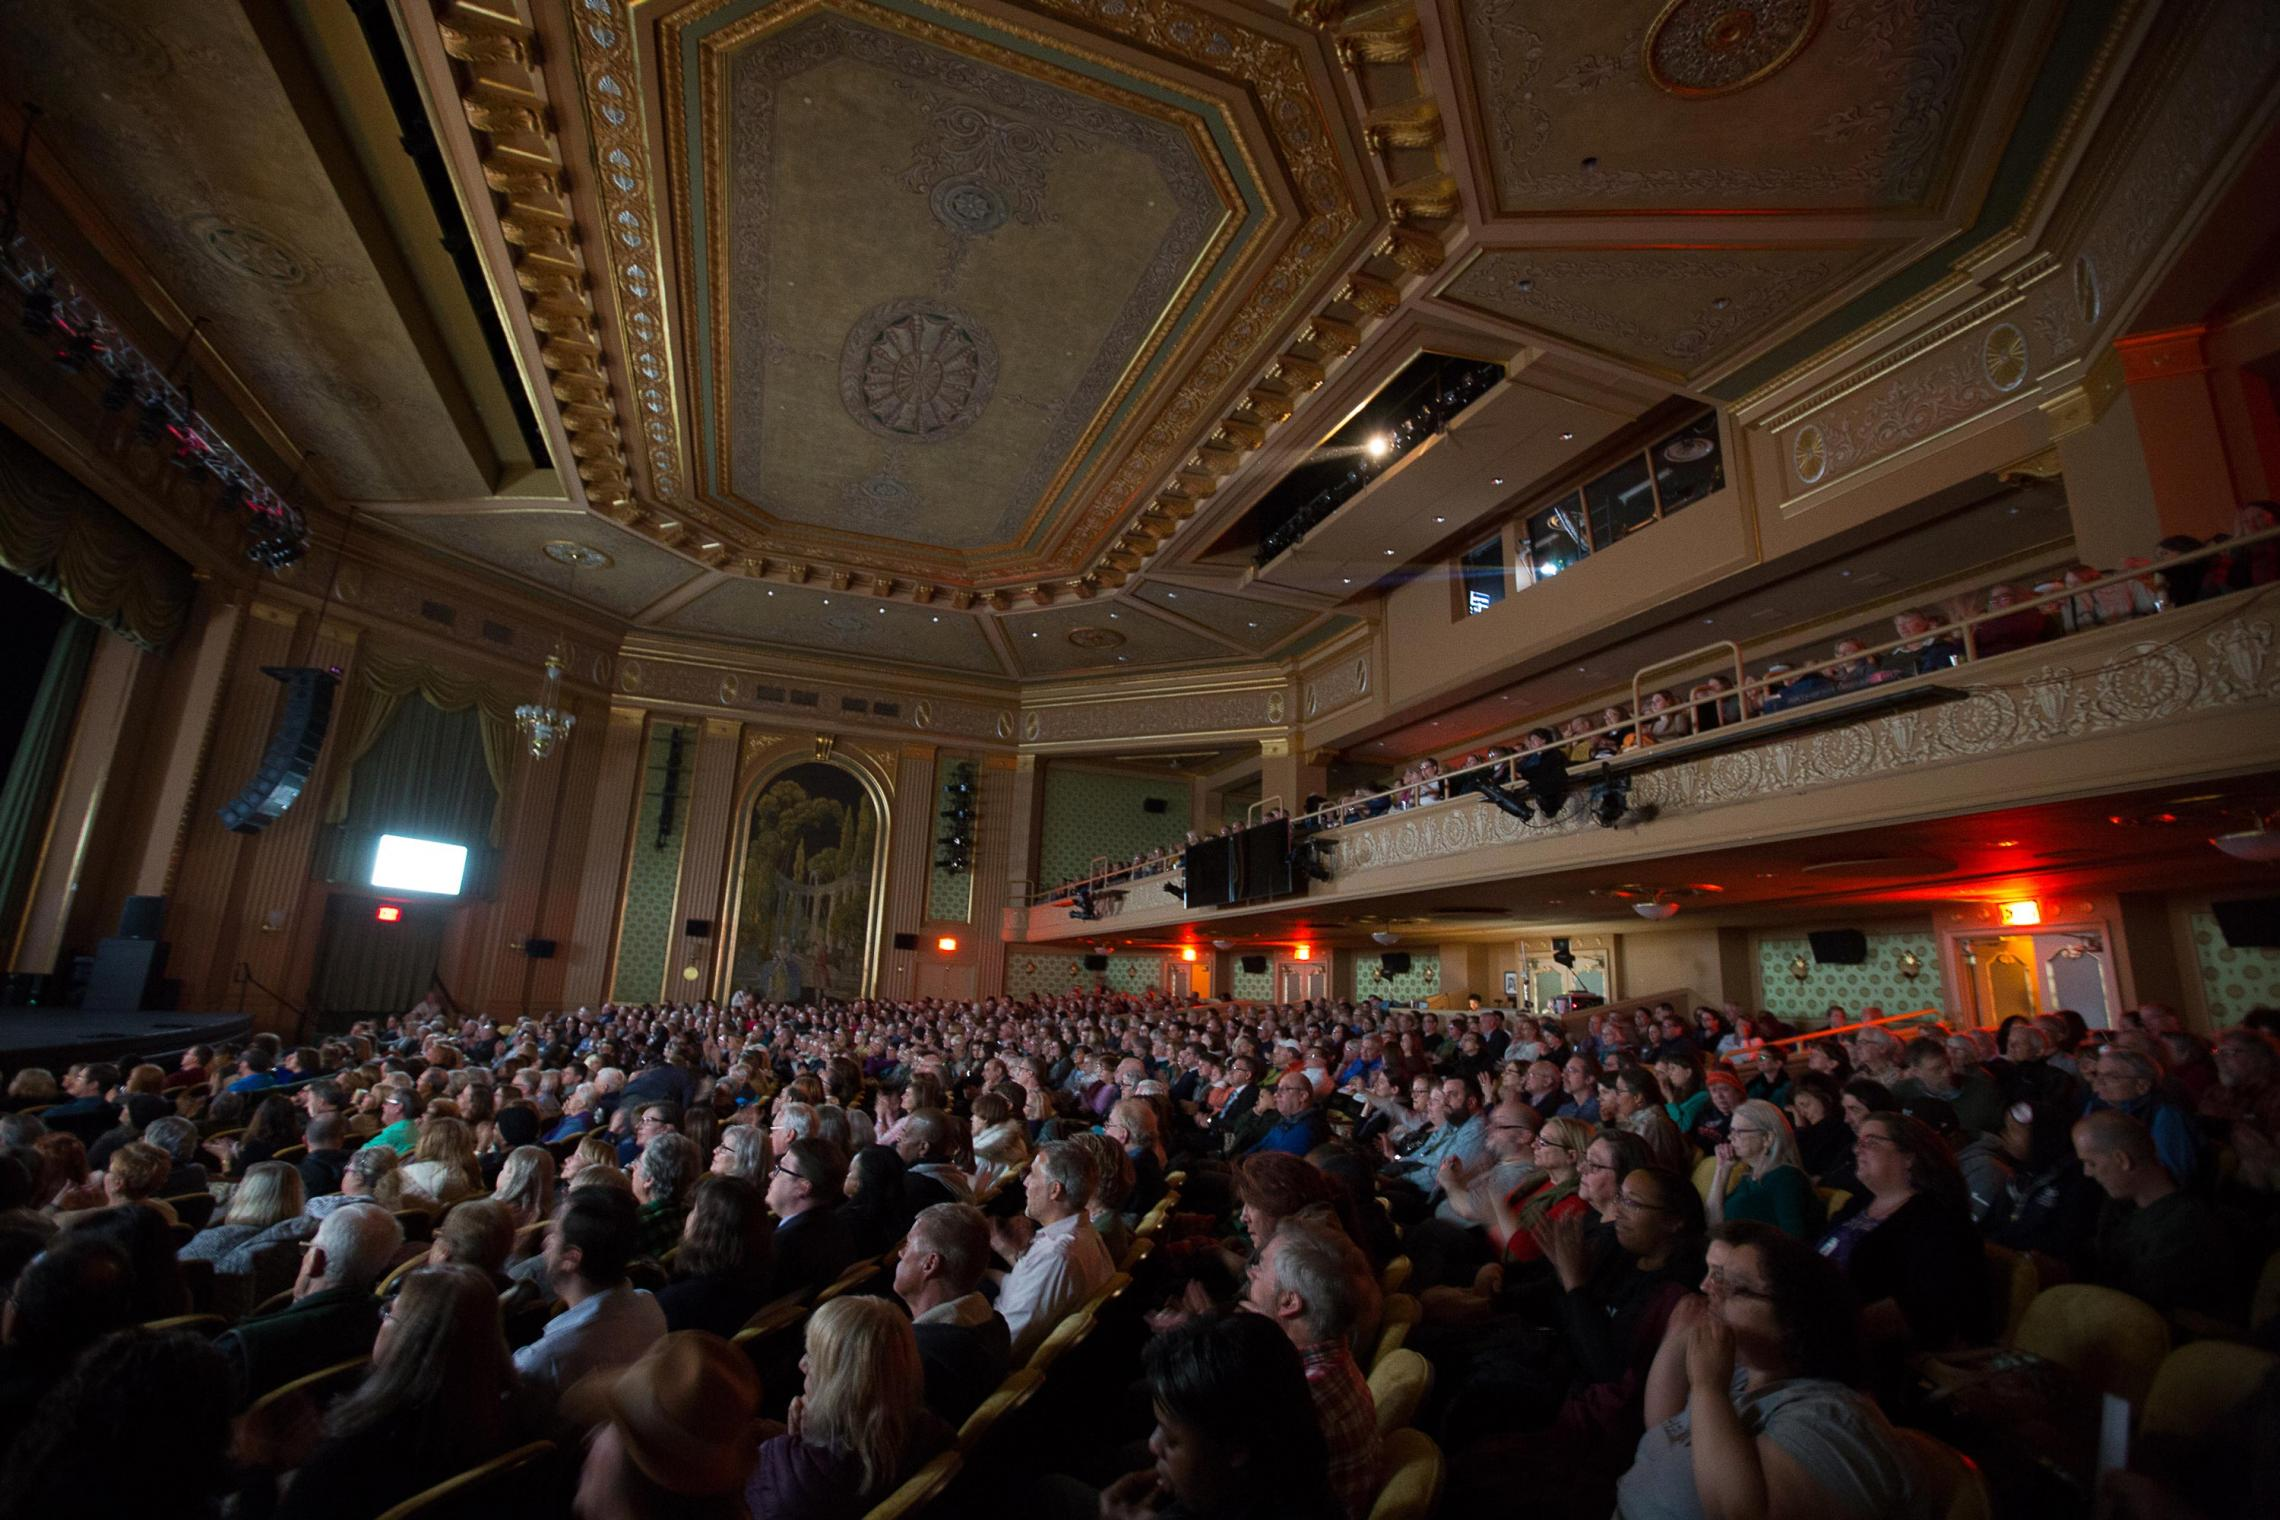 The Virginia Film Festival annually draws crowds of filmmakers and film lovers to Charlottesville for a robust program of screenings, discussions and events. (Photo by Eze Amos)